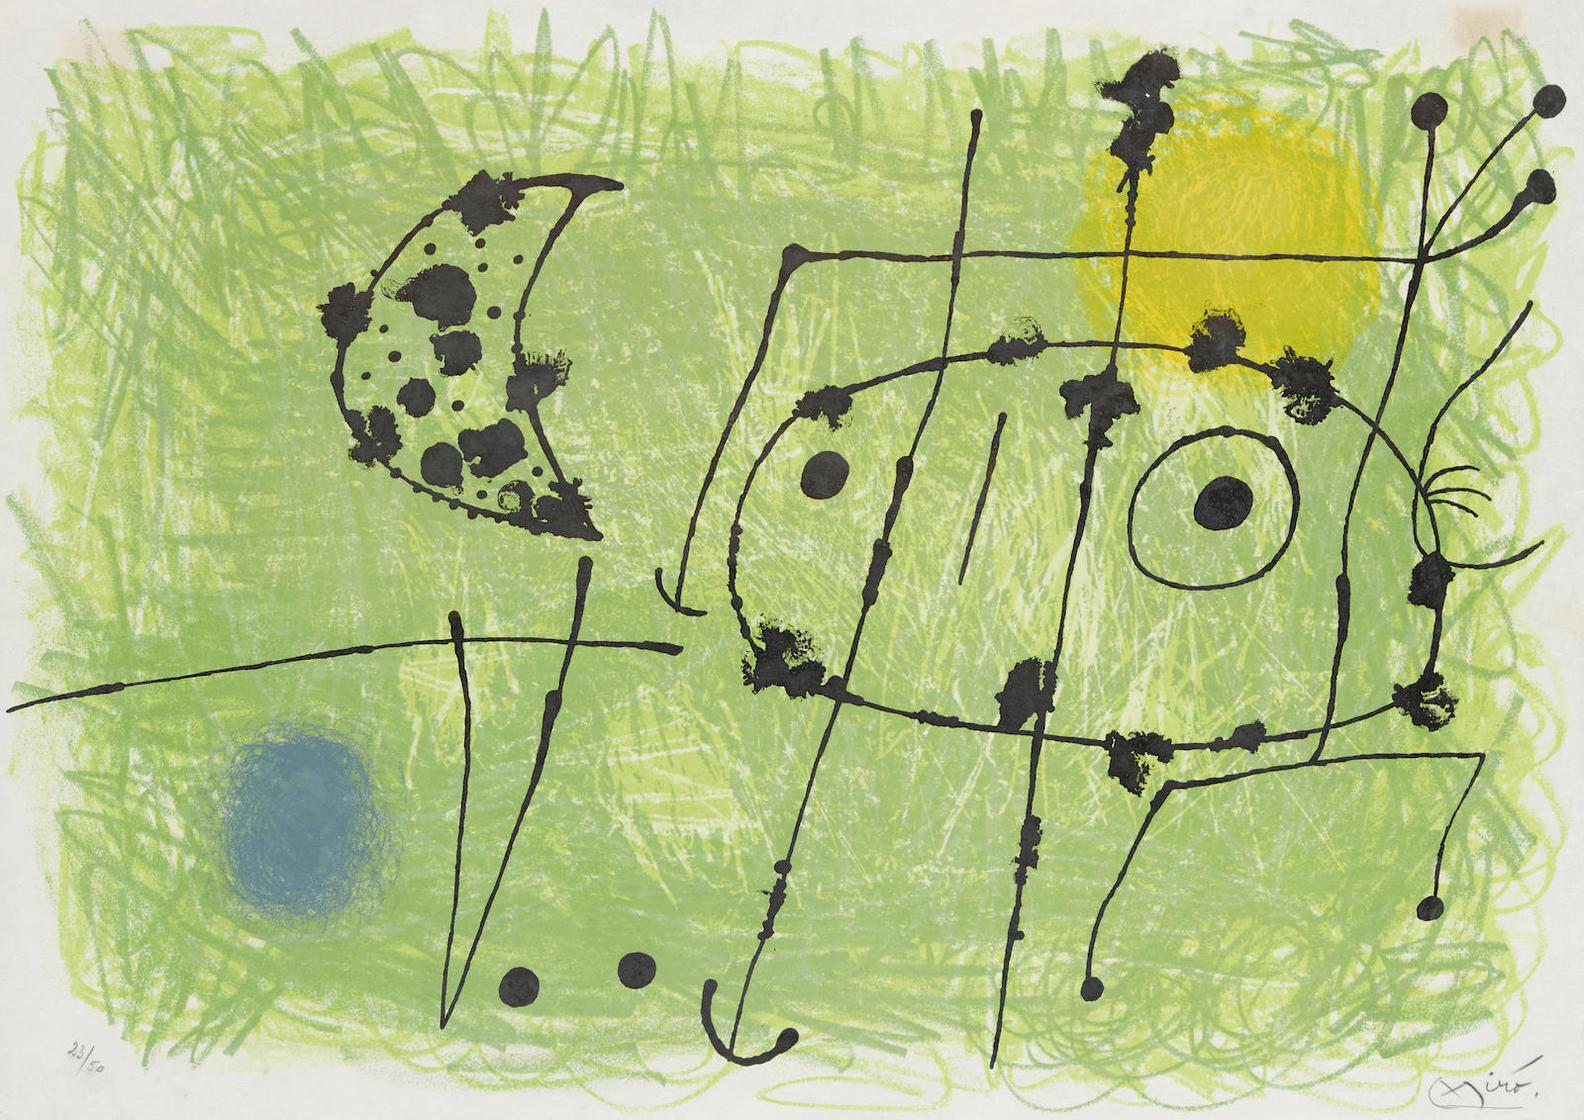 Joan Miro-Pl. VI, From Le Lezards Aux Plumes Dor-1967